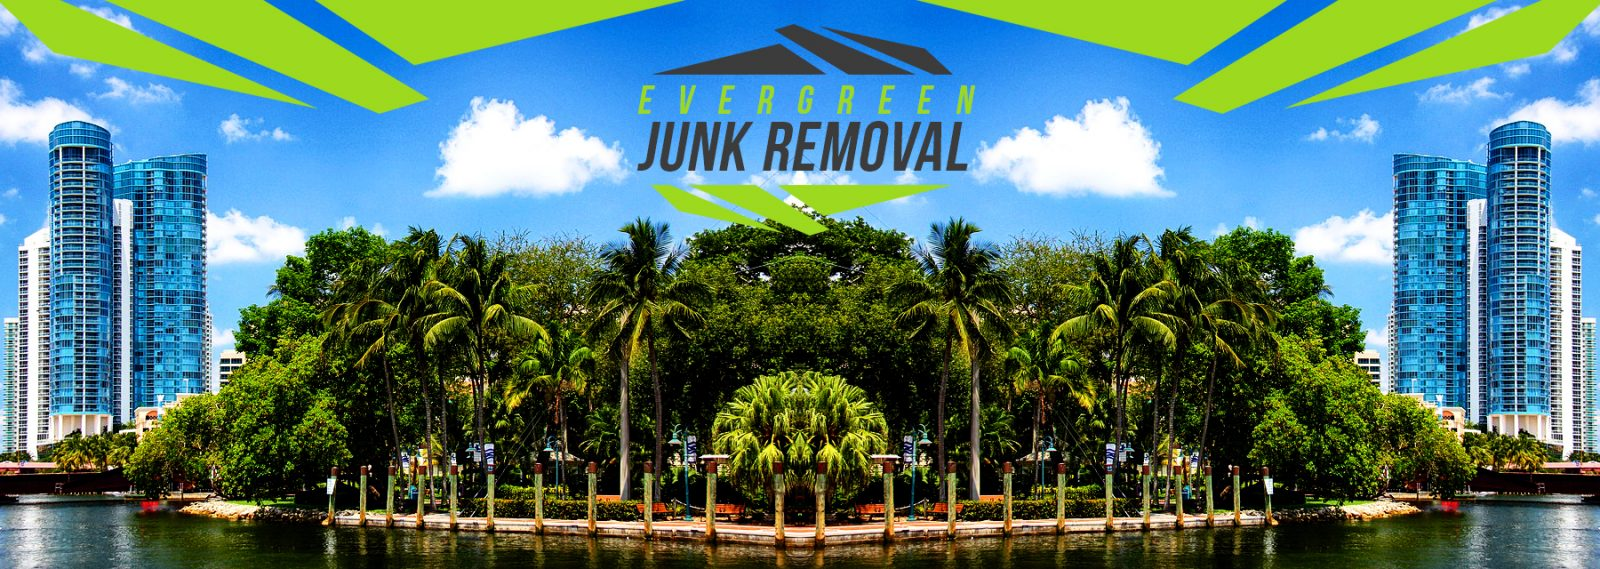 Junk Removal Deerfield Beach Company - Evergreen